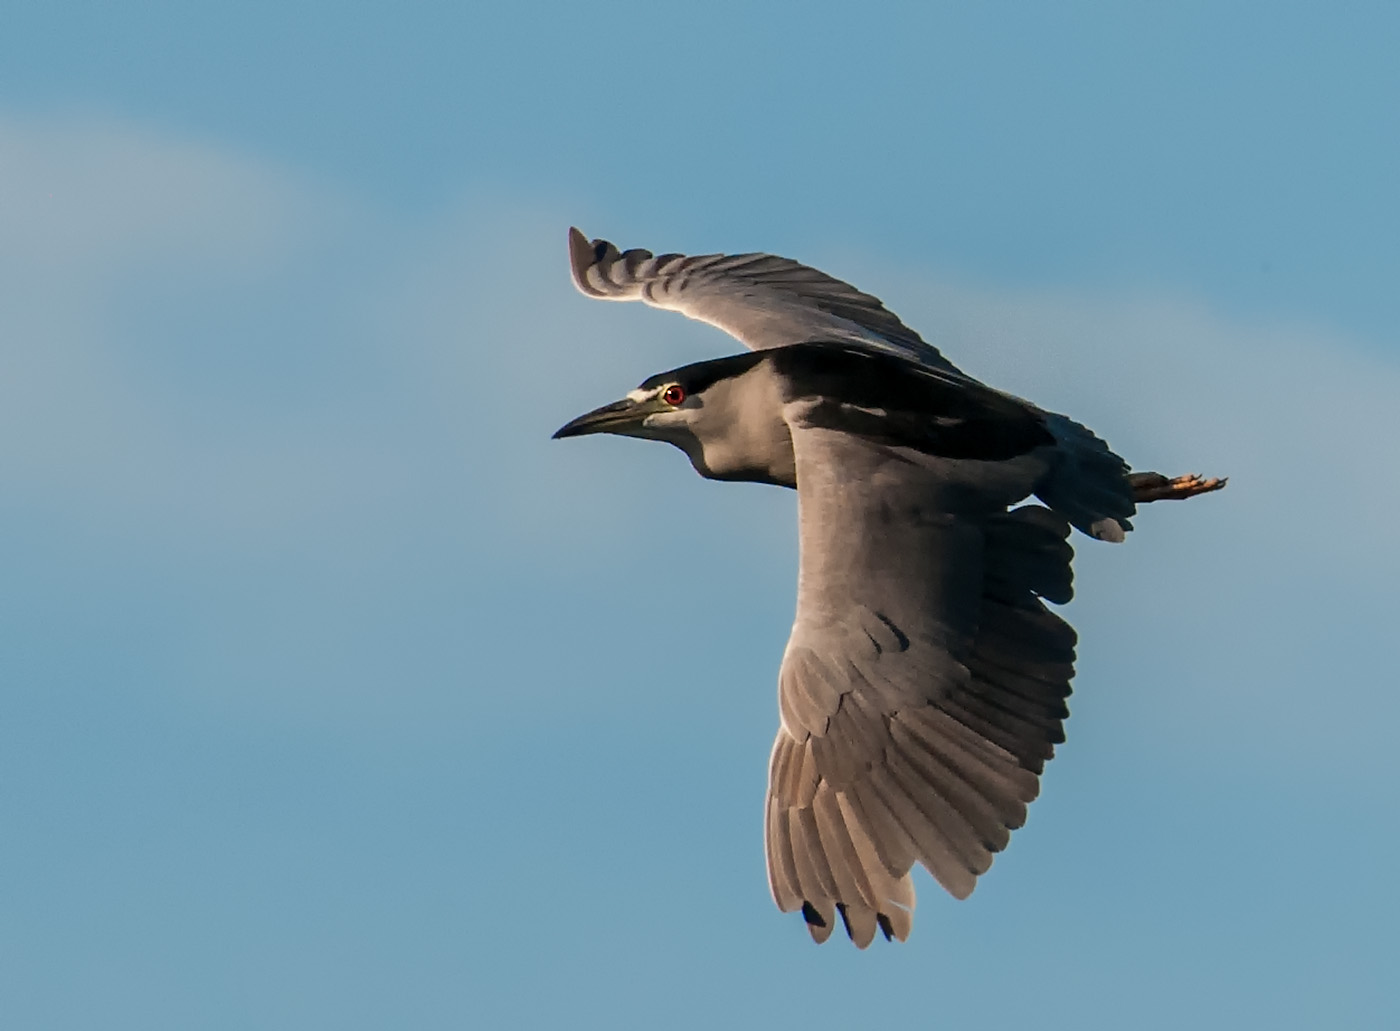 Night heron in flight - photo#9